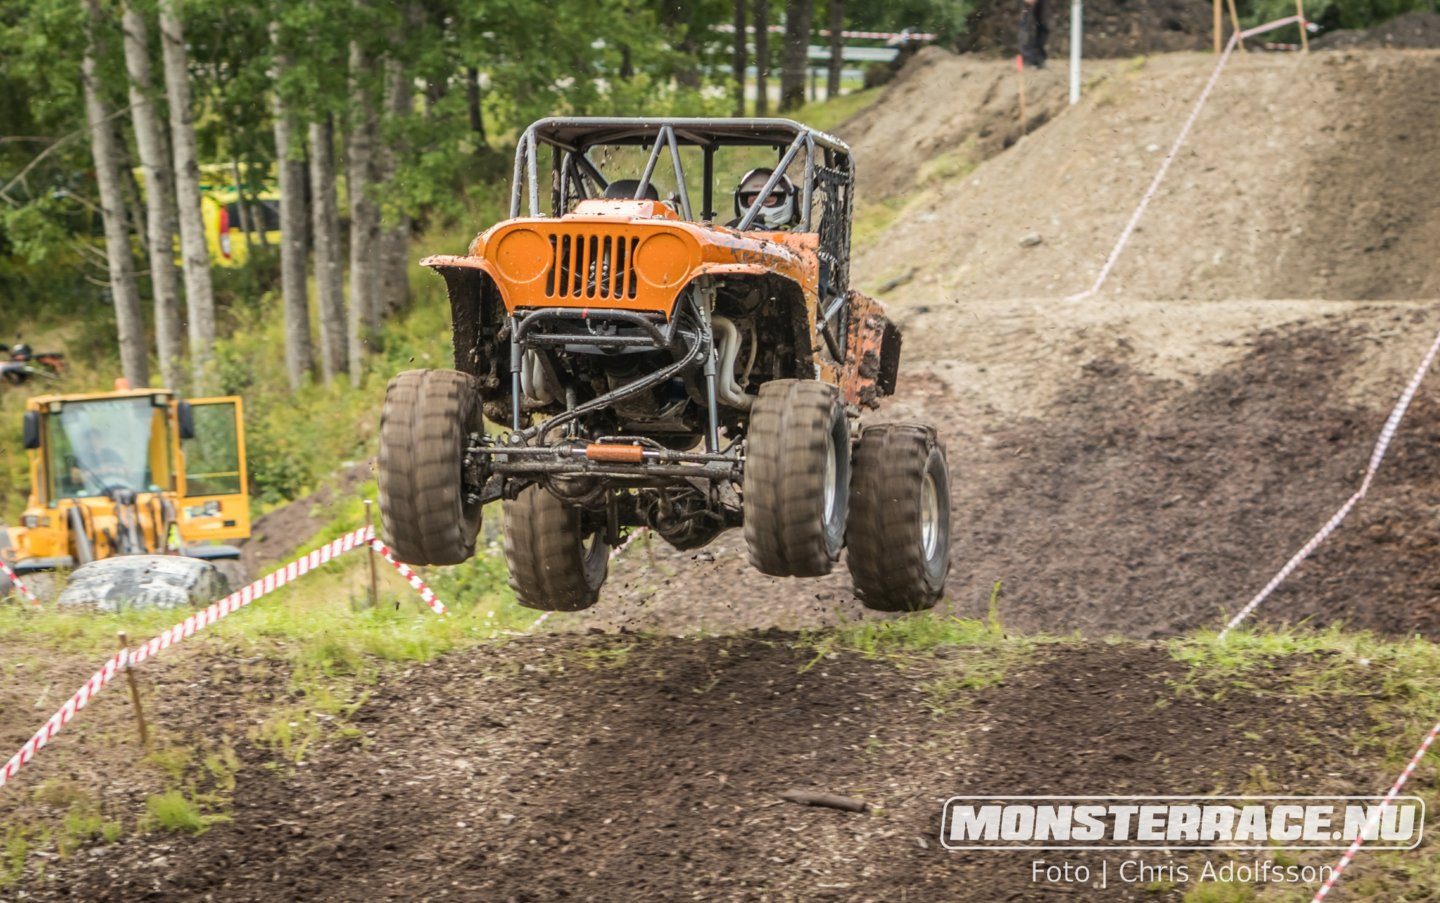 Monsterrace Ed dag 1 (144)